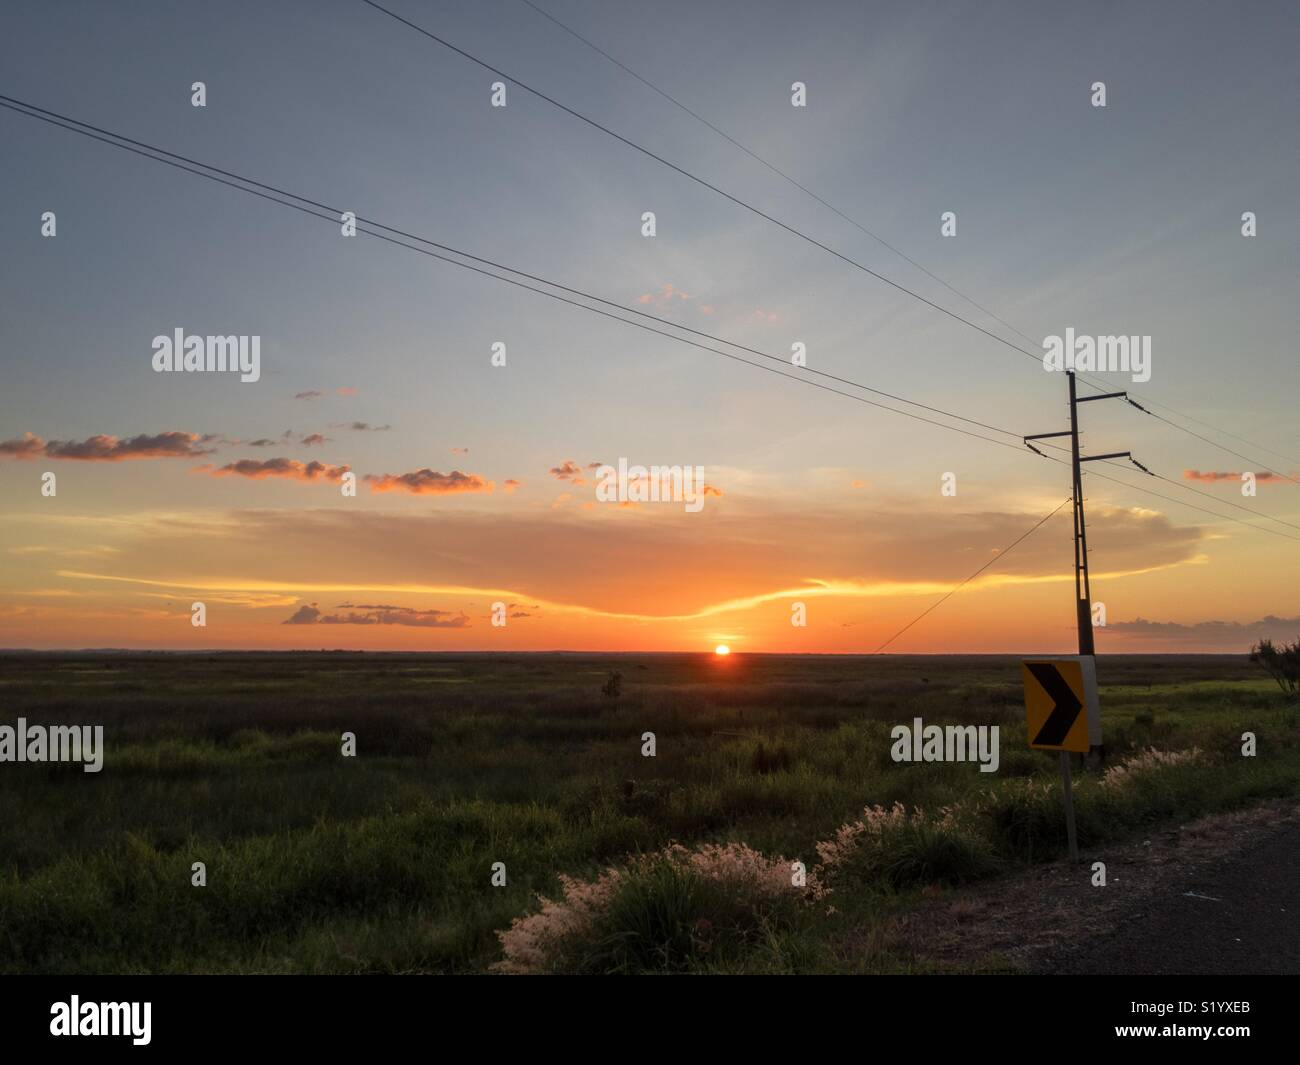 Sunset over the Adelaide River flood plains, Northern Territory, Australia. Stock Photo